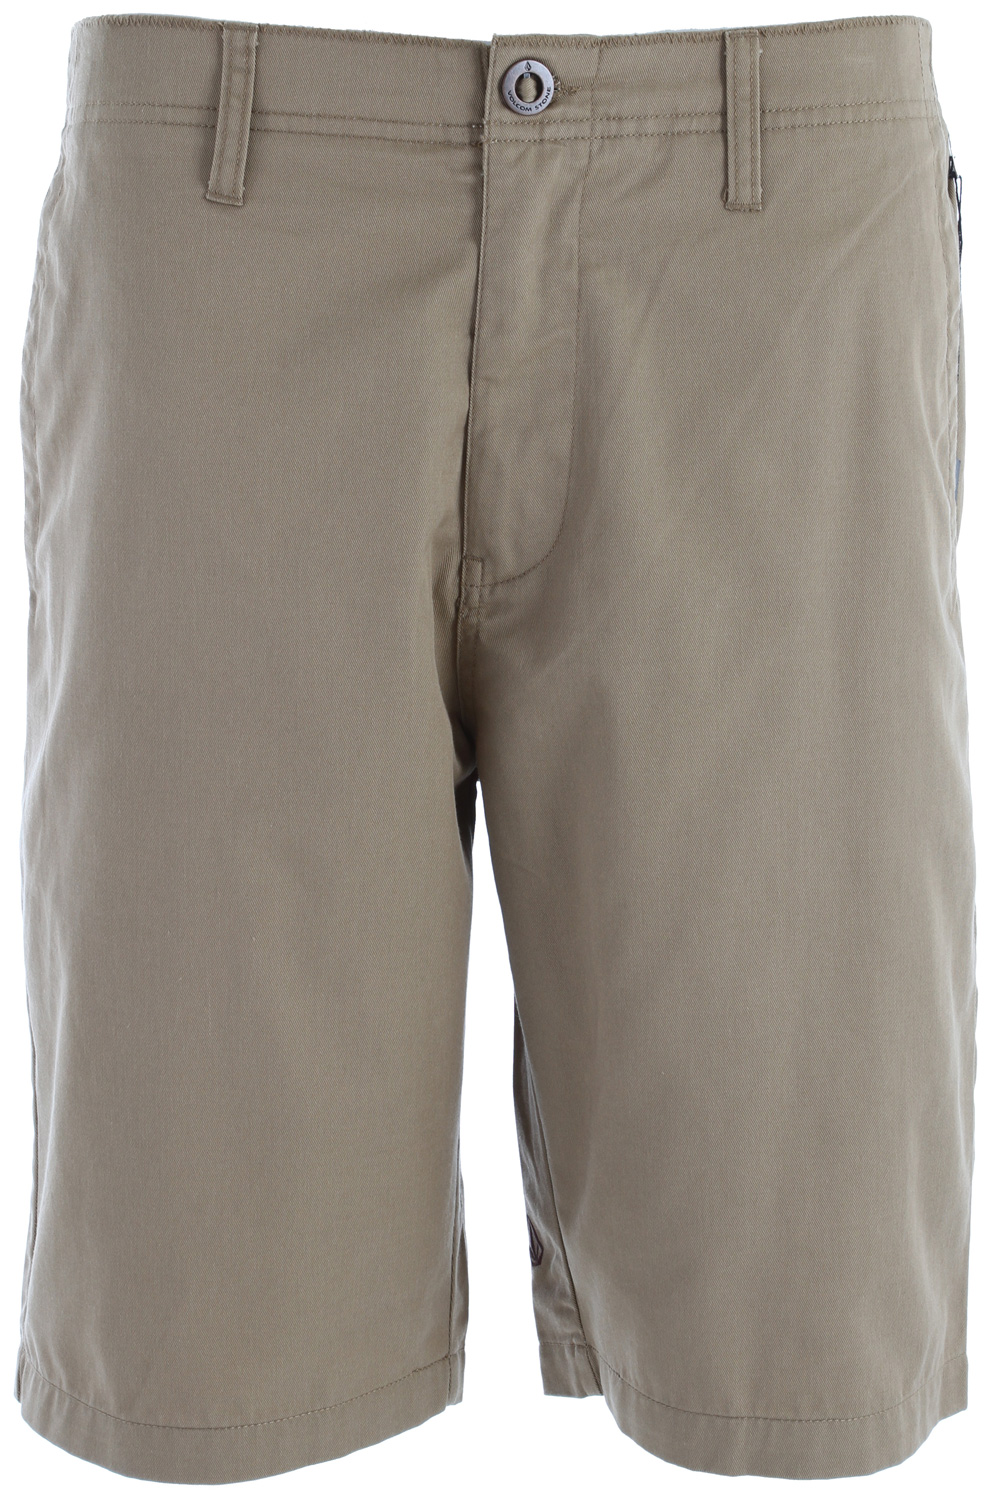 "Surf Key Features of the Volcom Fairmondo Shorts: 22"" Outseem Relaxed fit Pre-laundered 60% cotton/40% polyester twill - $24.95"